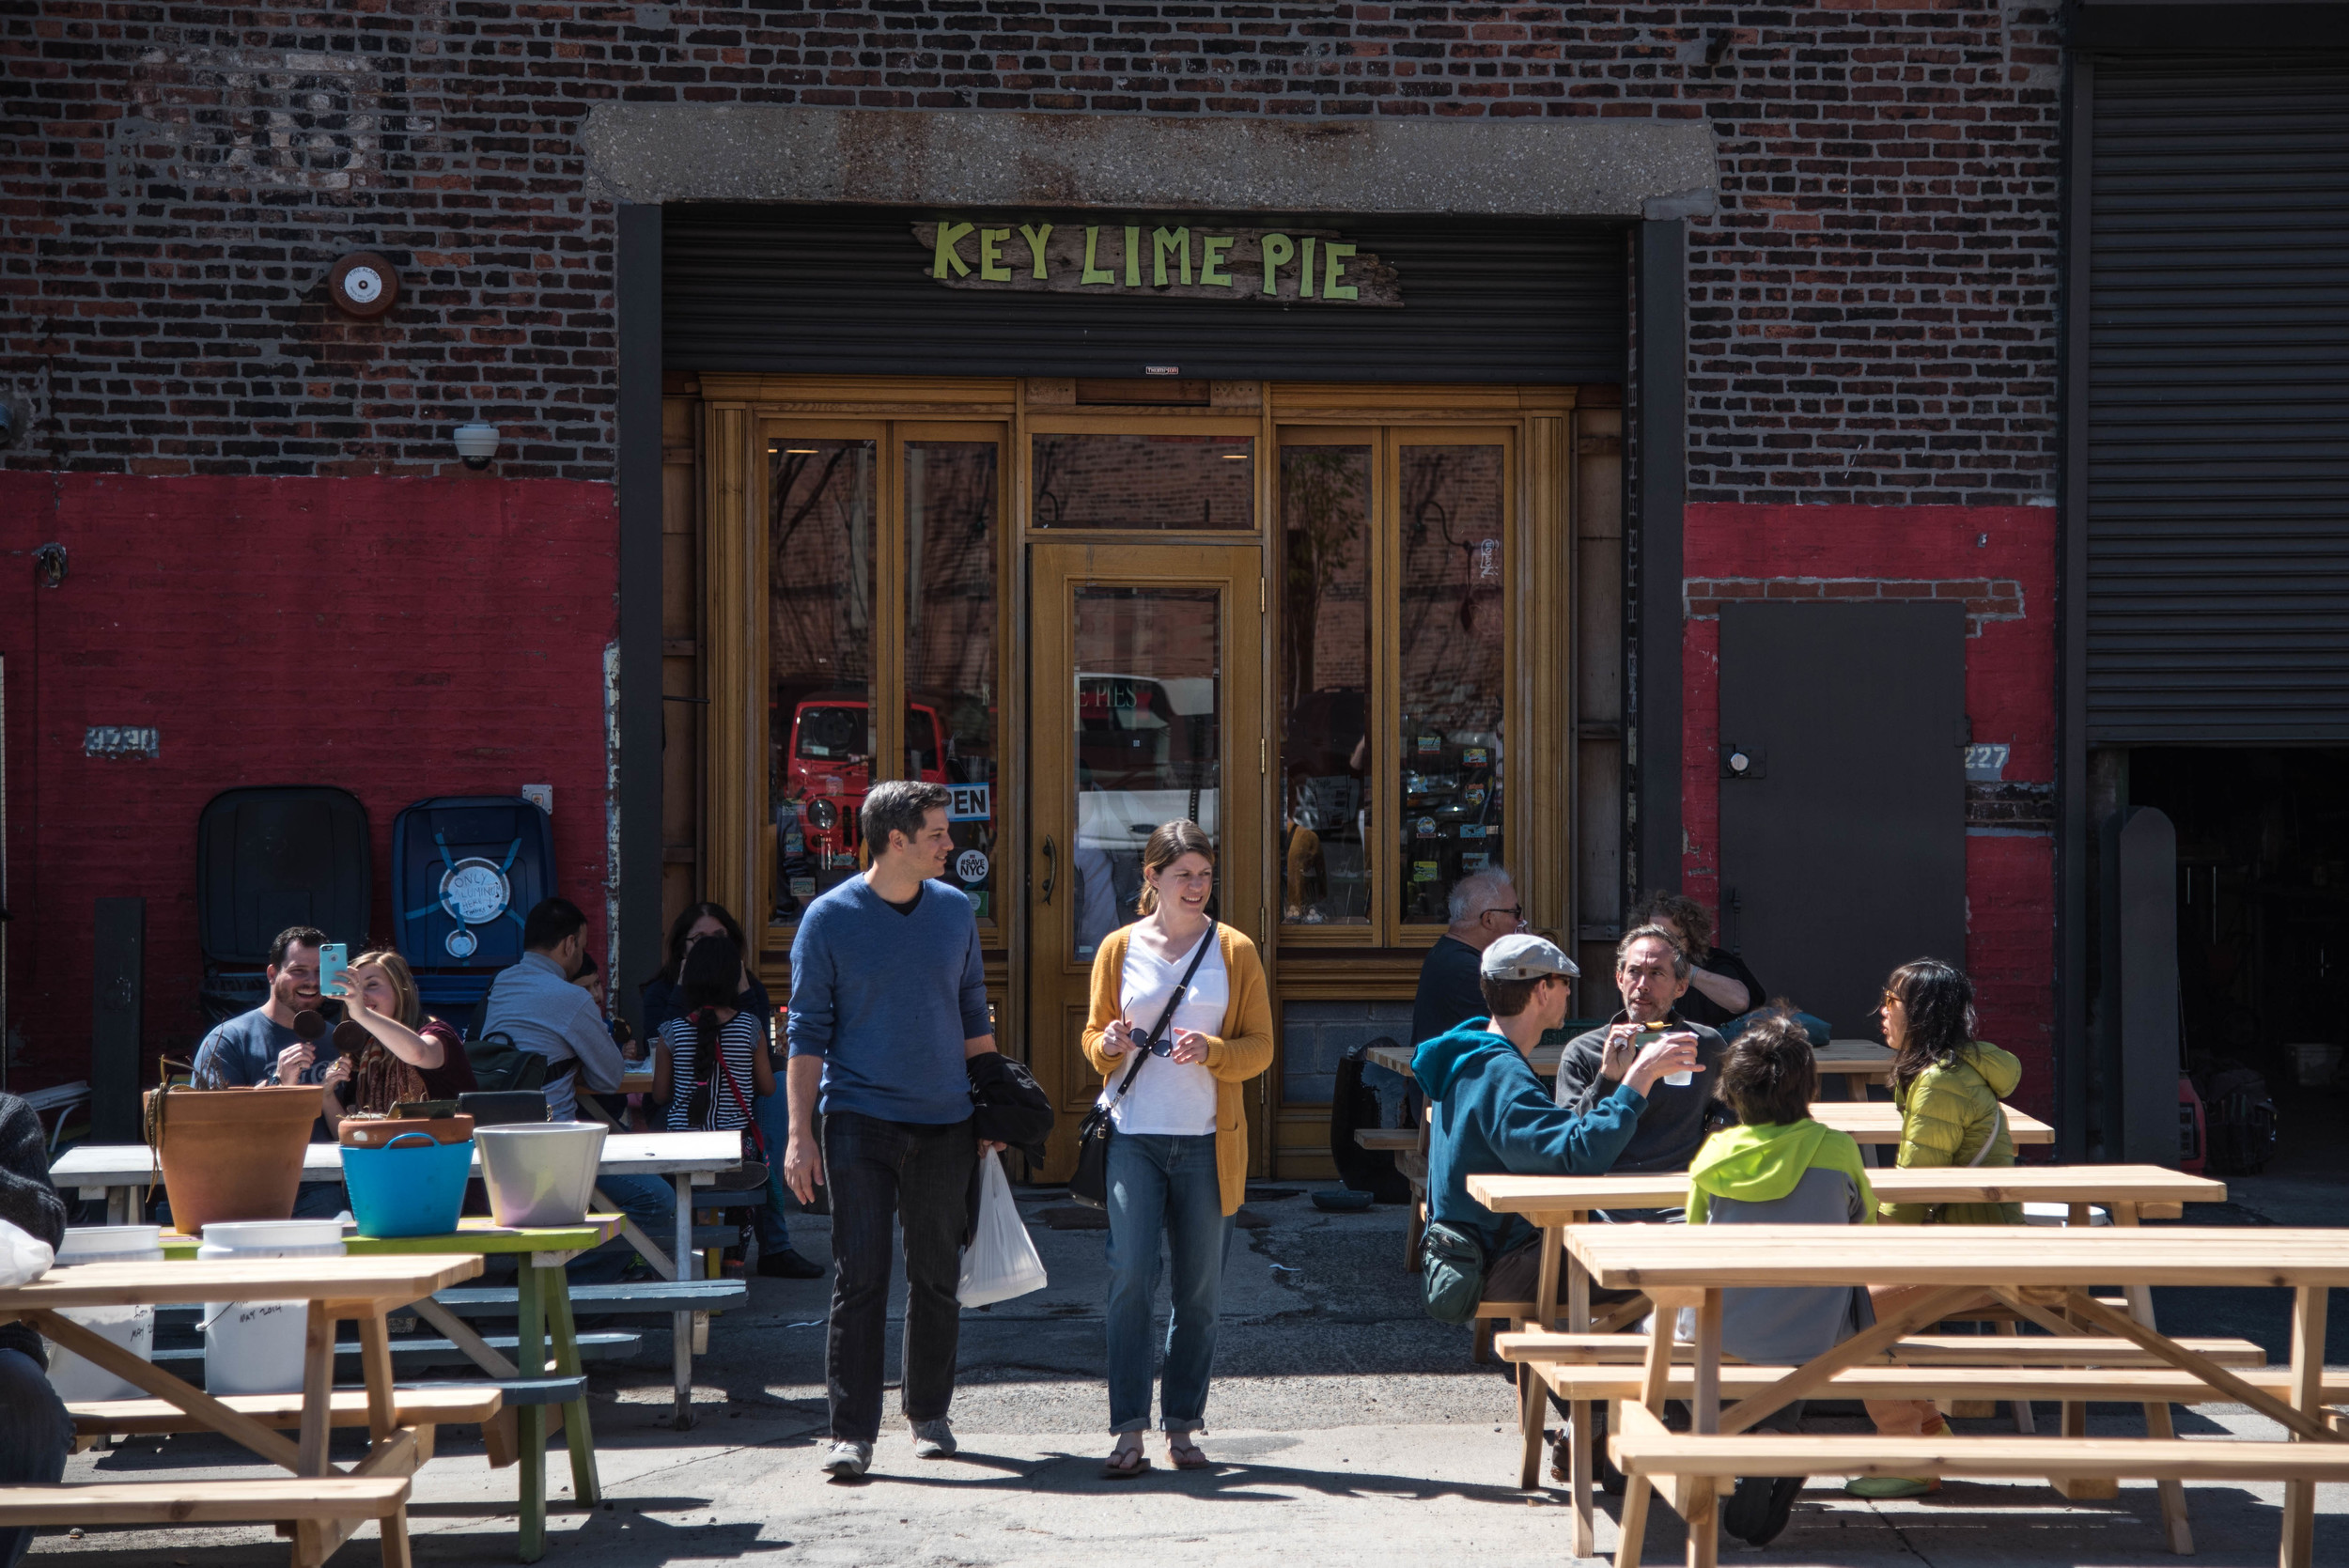 ROSE & IVY Journal A Guide to Redhook Brooklyn